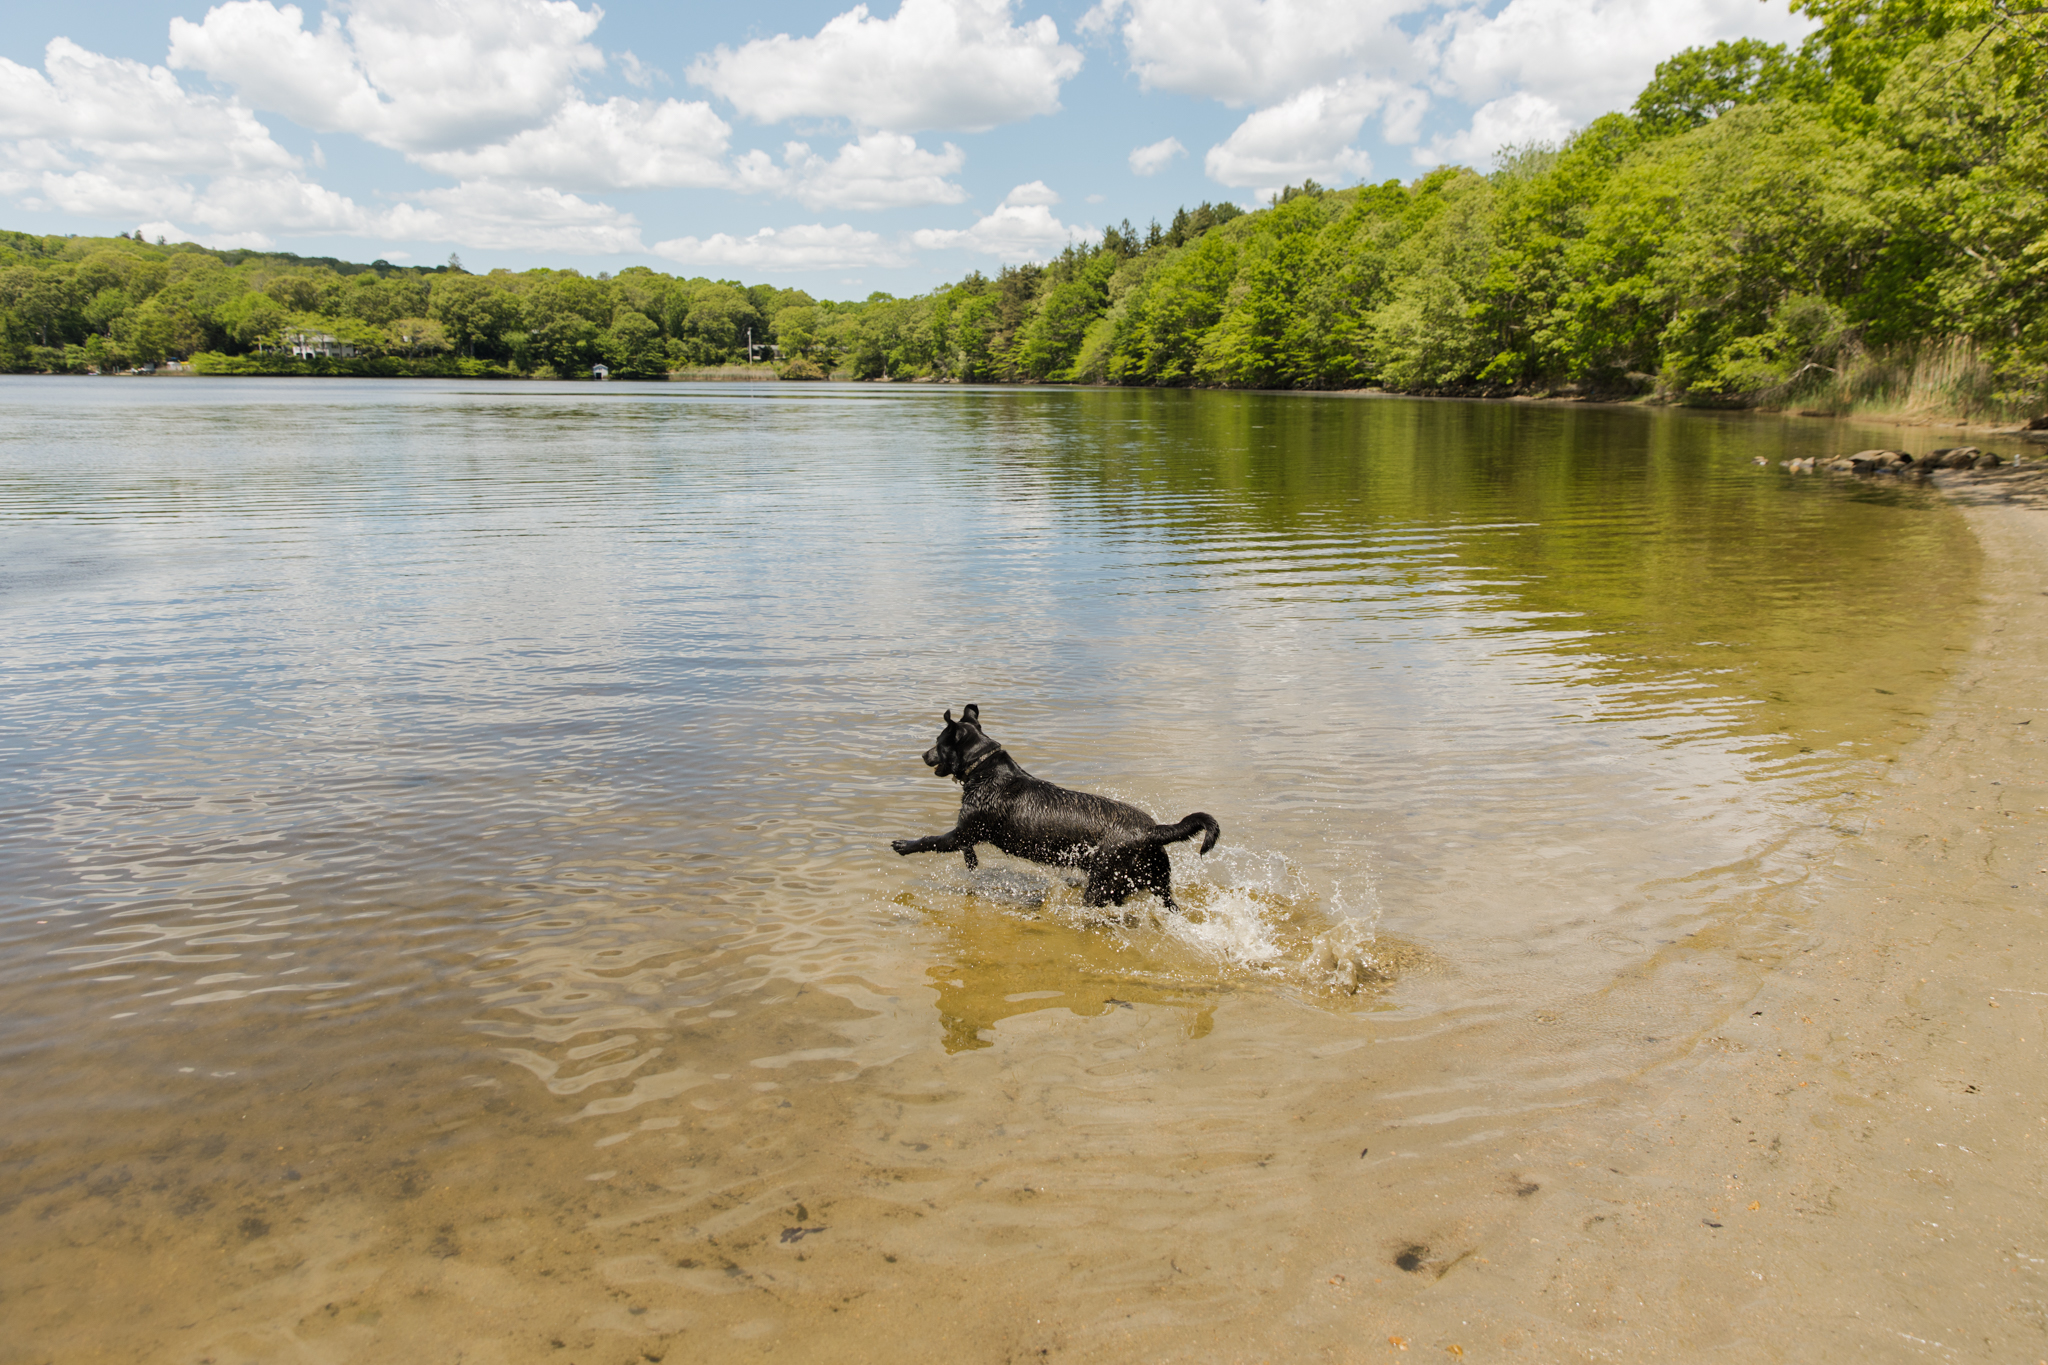 dog jumping into pond at King's Preserve in Saunderstown, RI